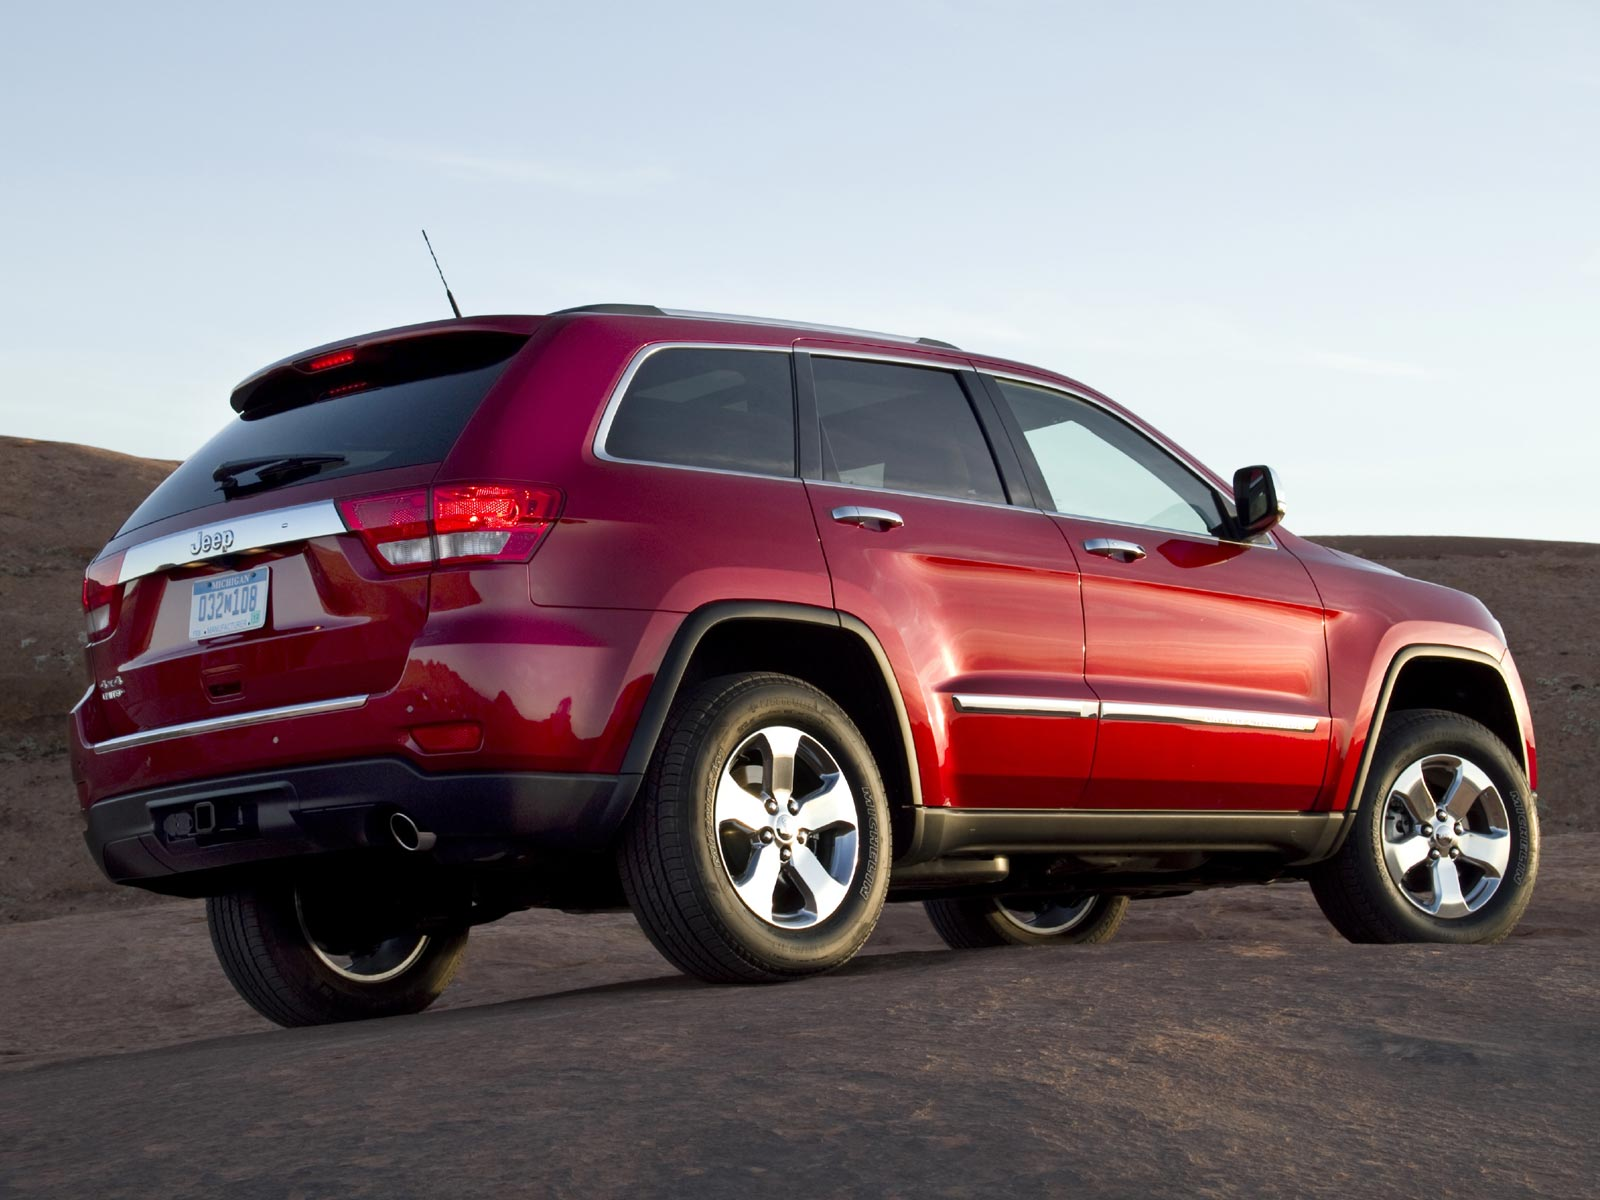 2019 Jeep Grand Cherokee photo - 5